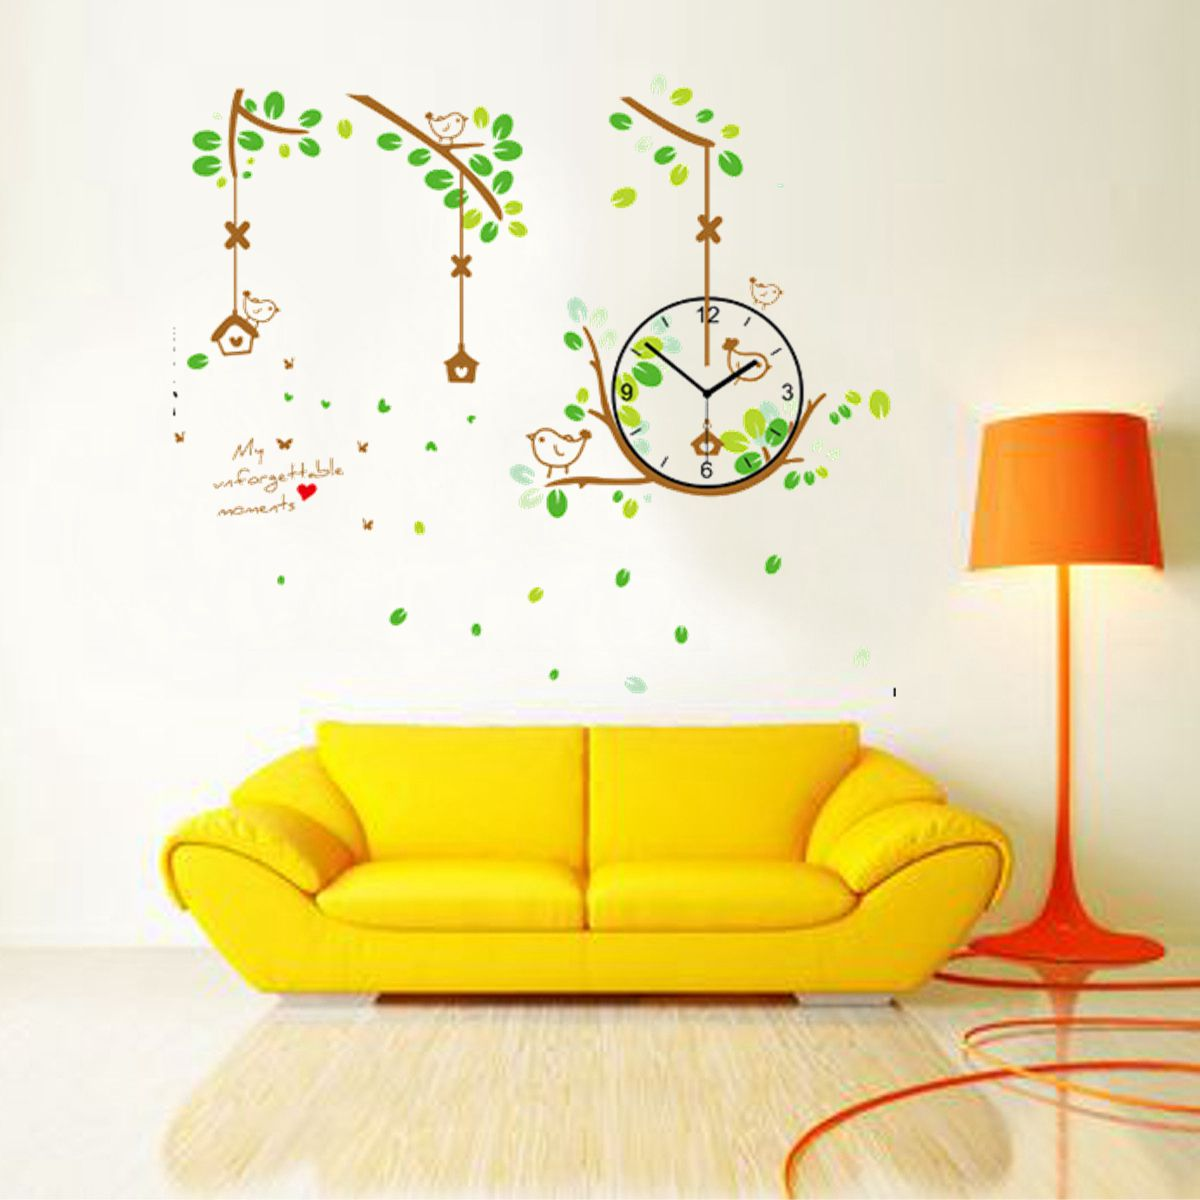 Modern Art Decor Wall Clock Sticker : D diy modern wall clock stickers decal art decor home